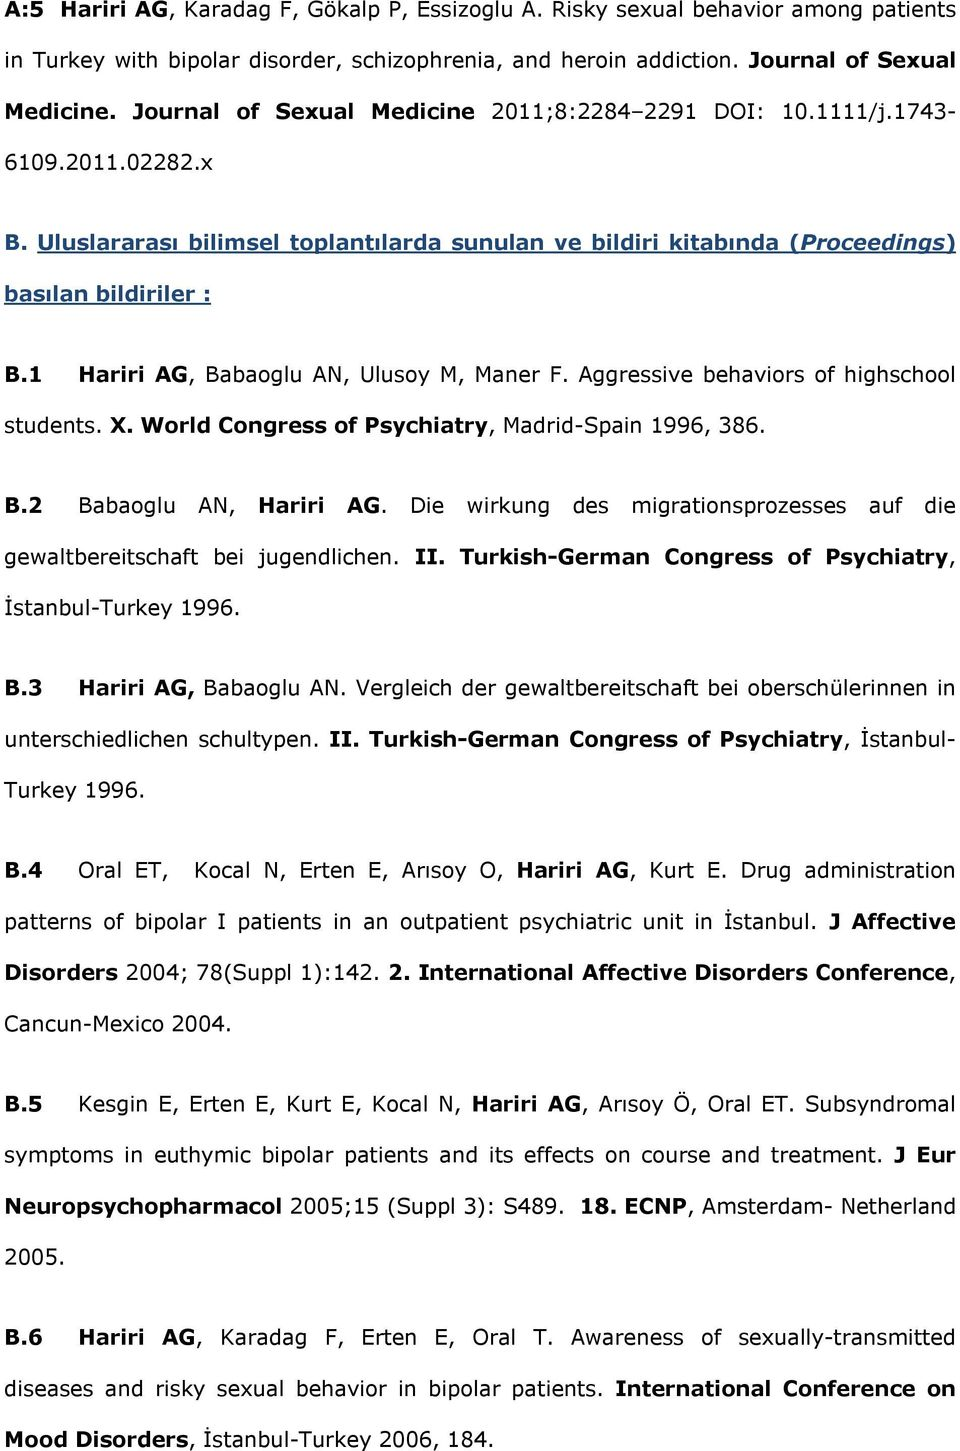 1 Hariri AG, Babaoglu AN, Ulusoy M, Maner F. Aggressive behaviors of highschool students. X. World Congress of Psychiatry, Madrid-Spain 1996, 386. B.2 Babaoglu AN, Hariri AG.